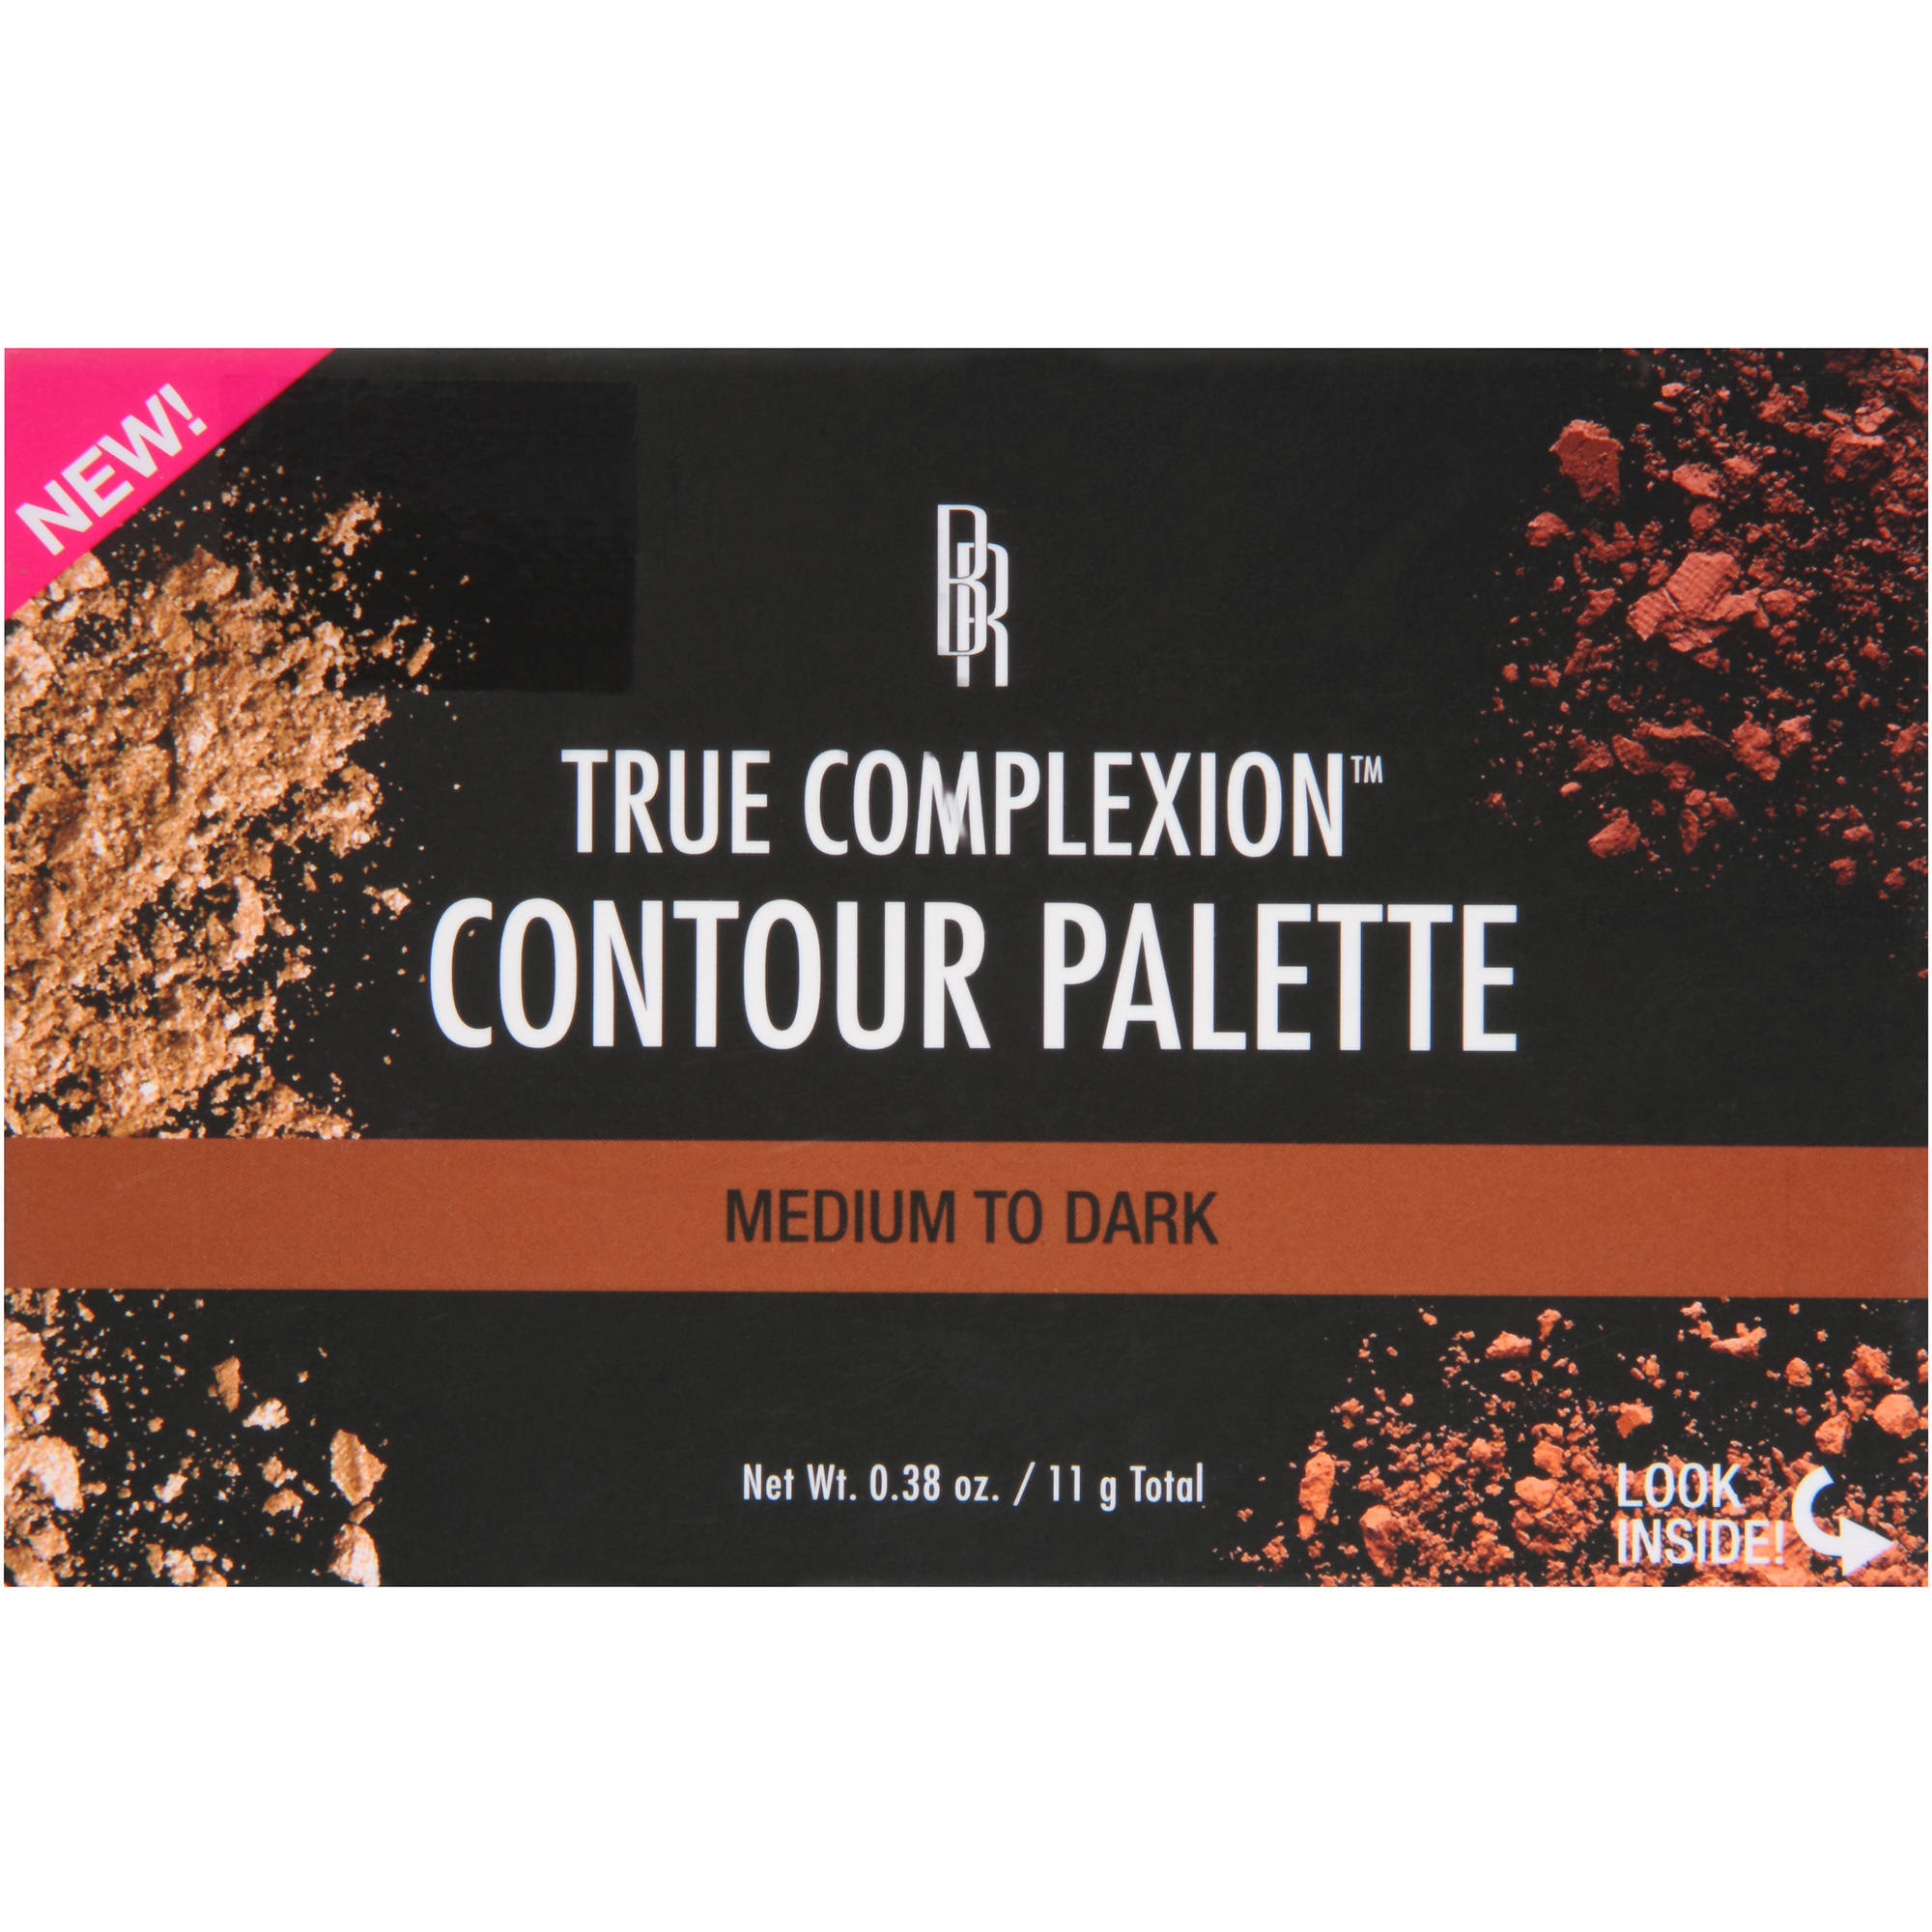 Black Radiance True Complexion Contour Palette, Medium to Dark, 0.38 oz